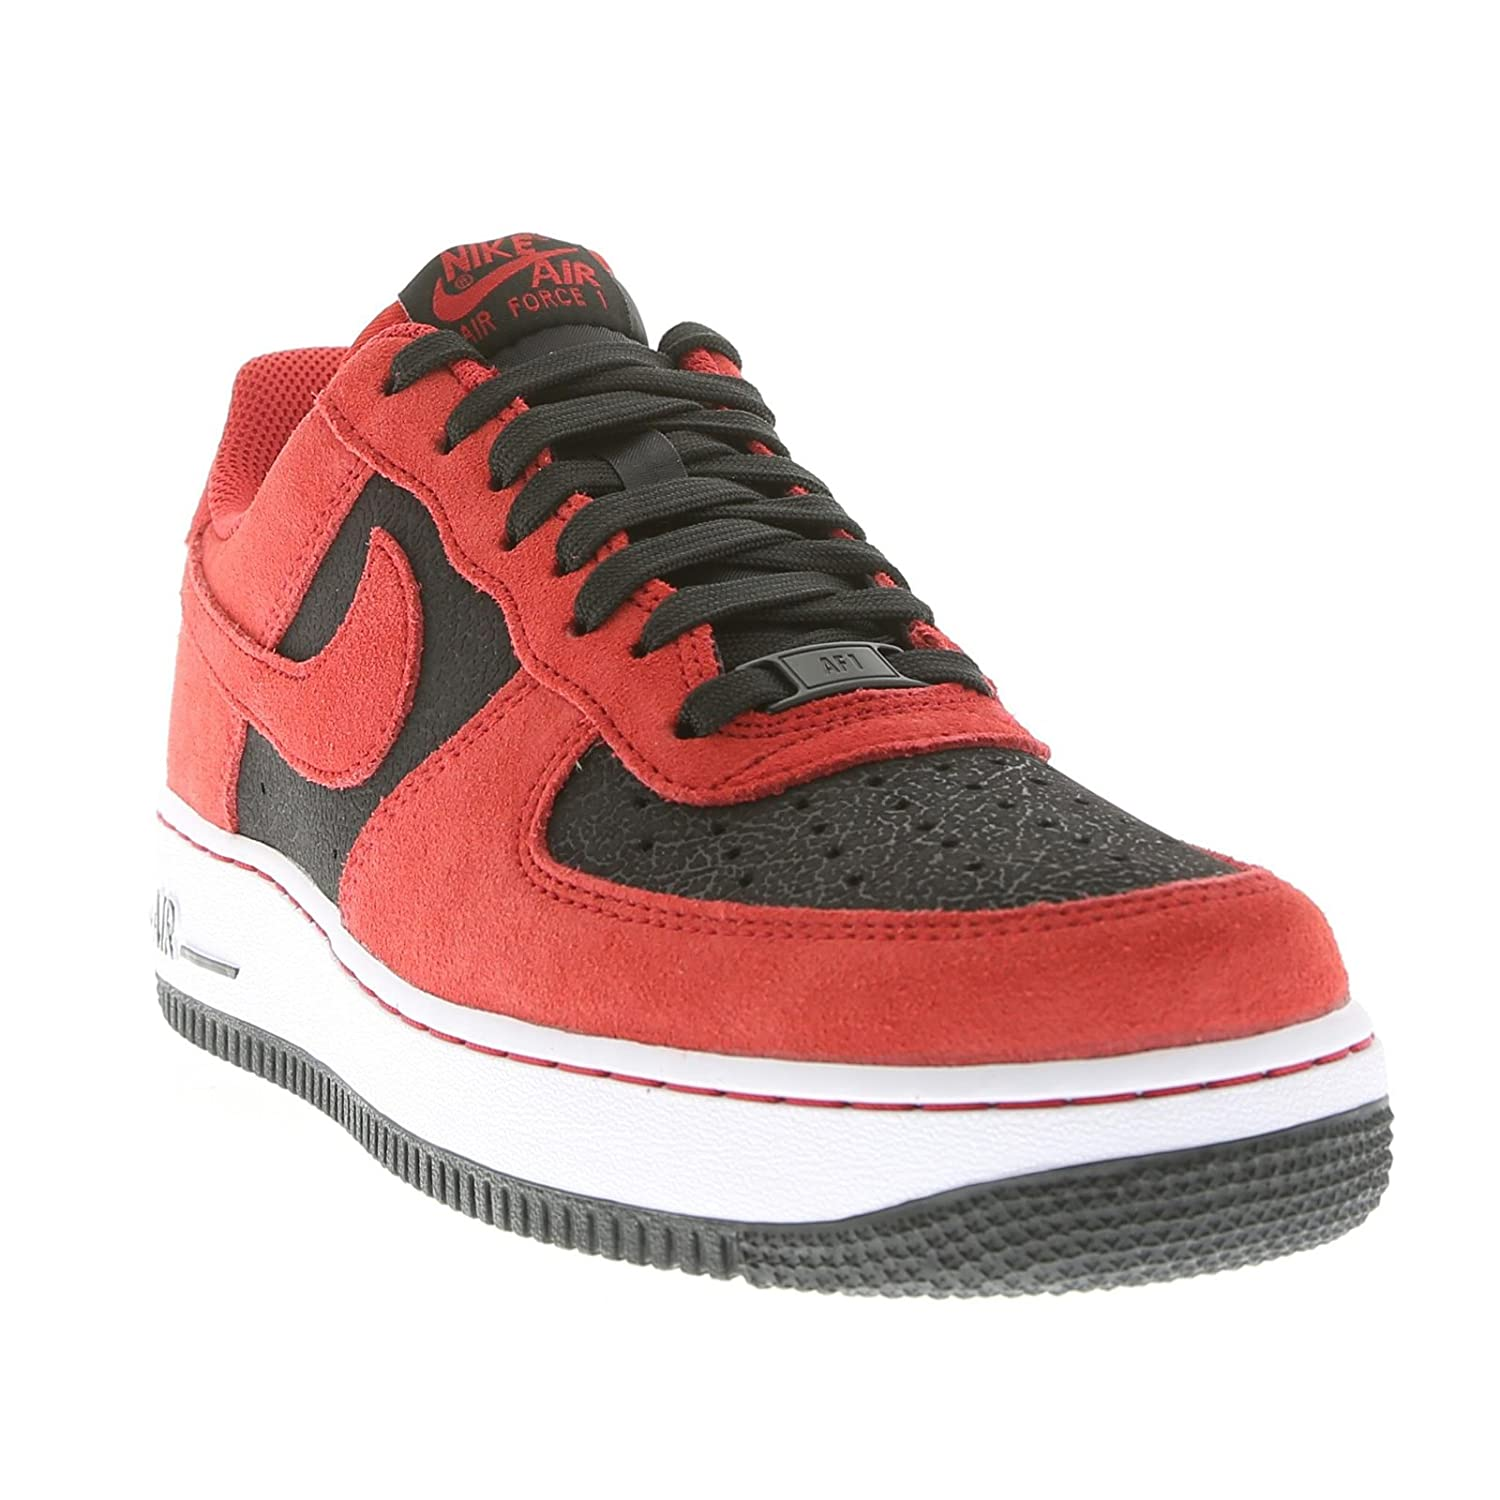 designer fashion 8a435 c8cd3 ... Amazon.com Nike Air Force 1 Red Black Mens Trainers Fashion Sneakers ...